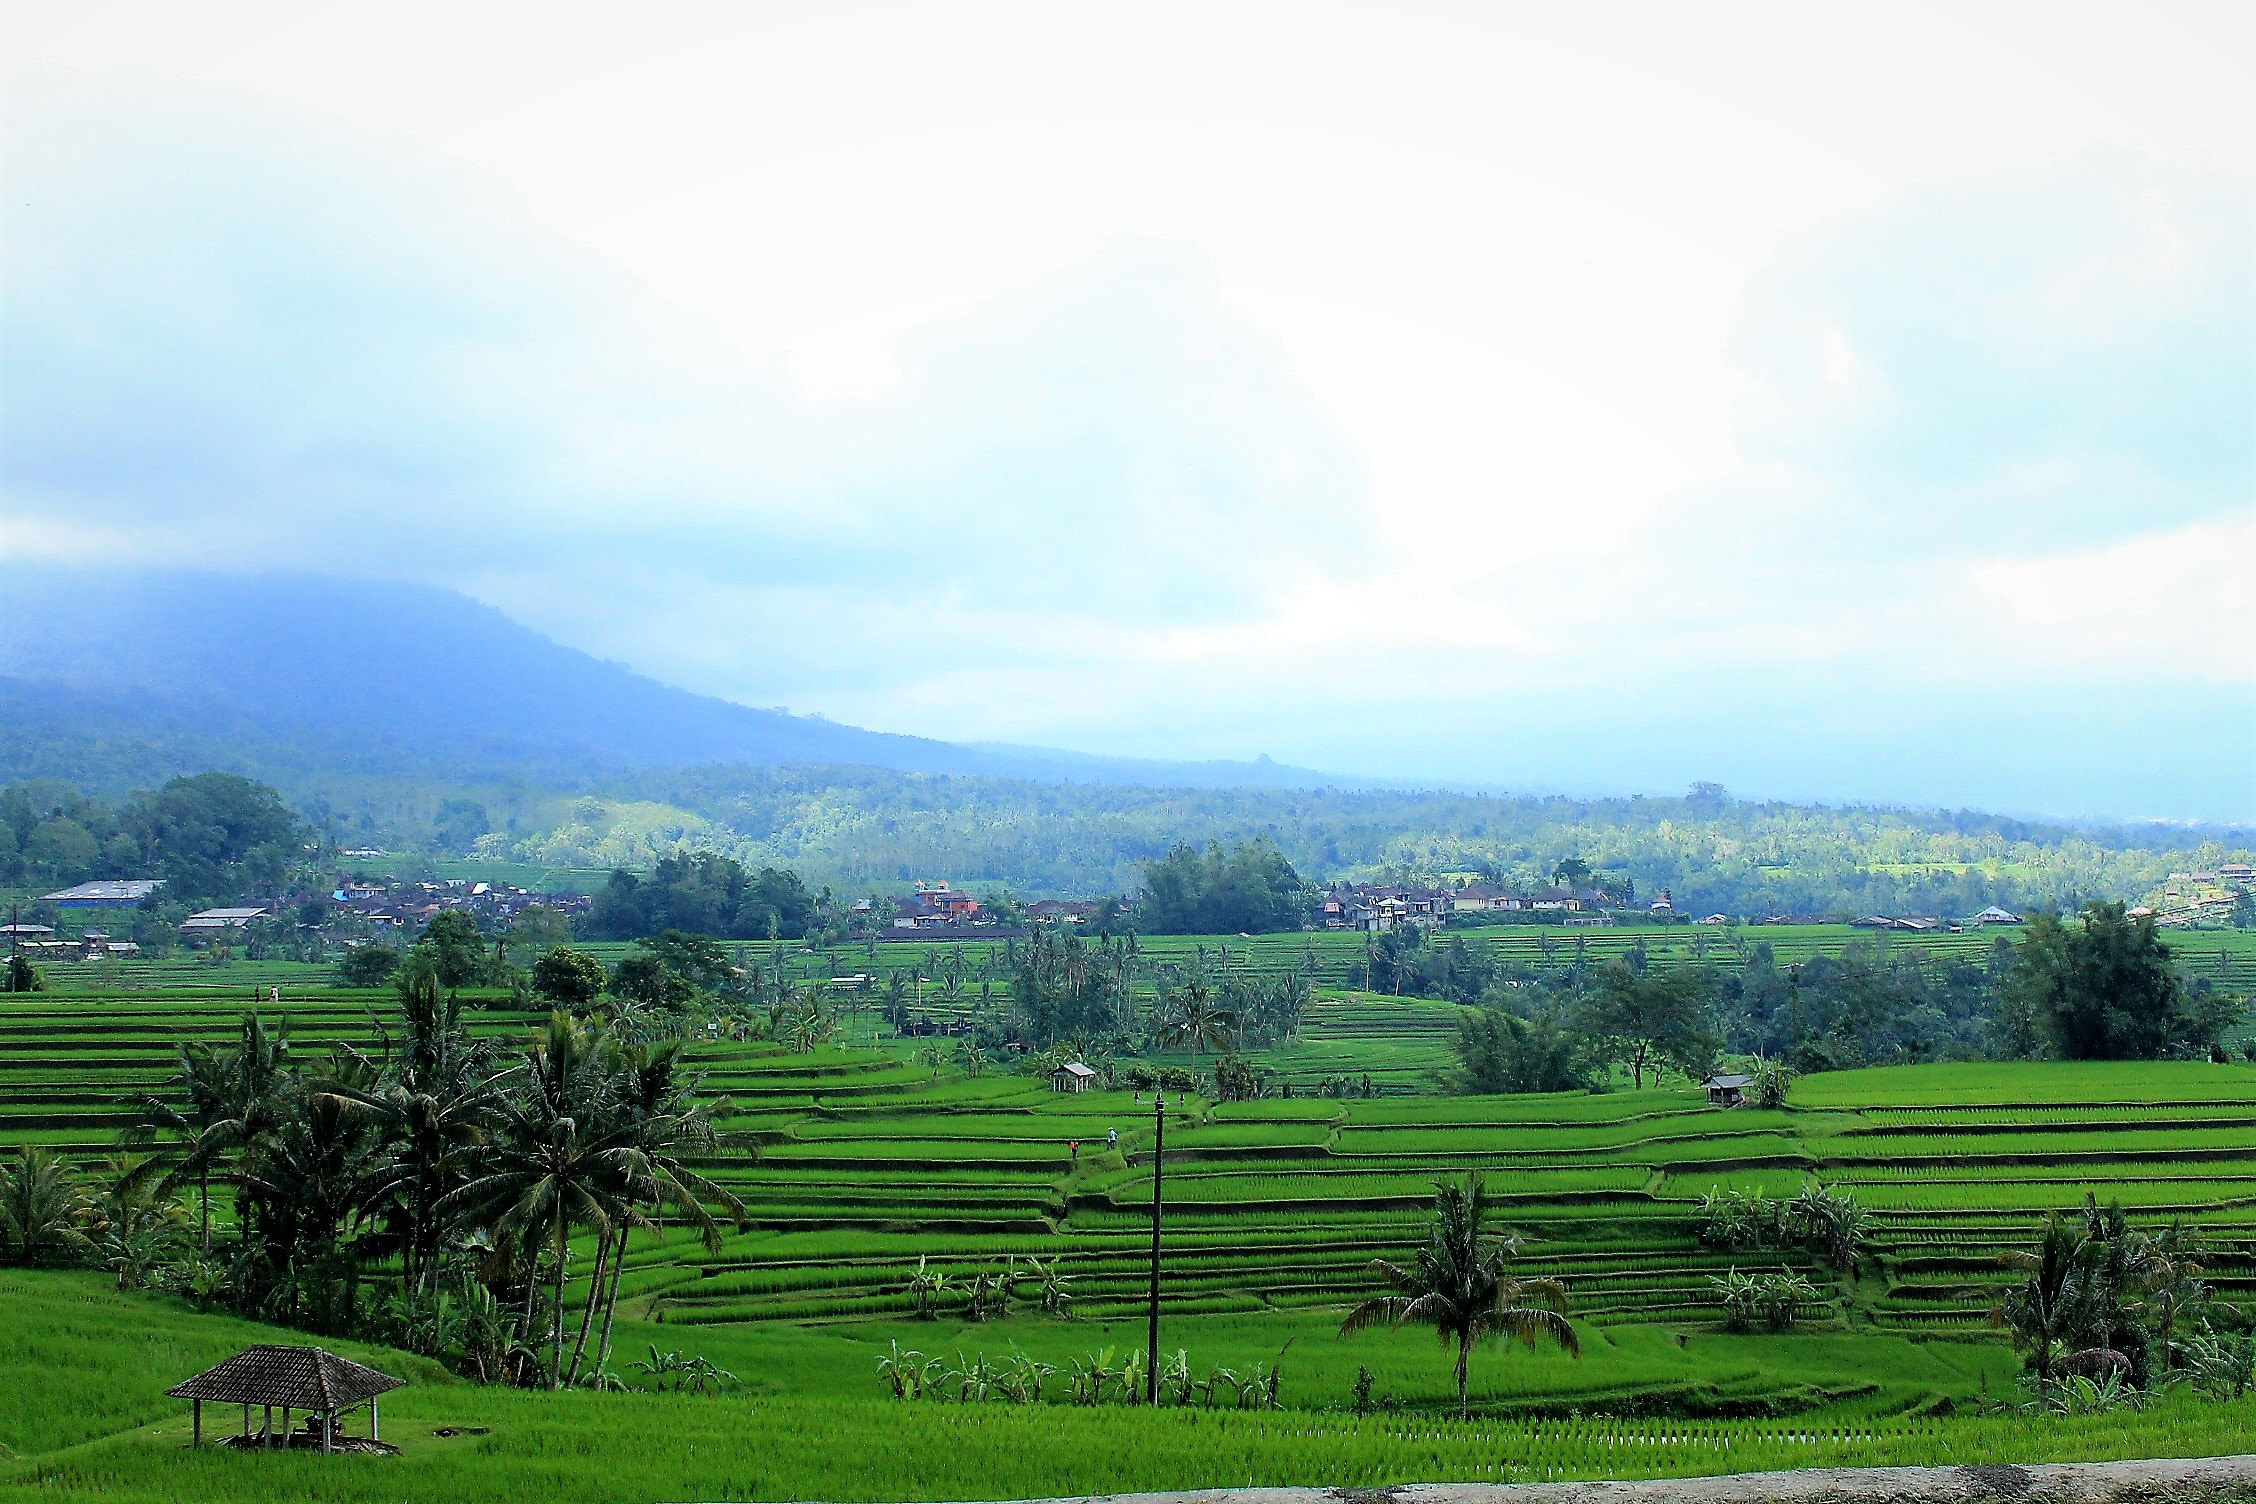 rice-fields-paddies-tegalalang-bali-indonesia